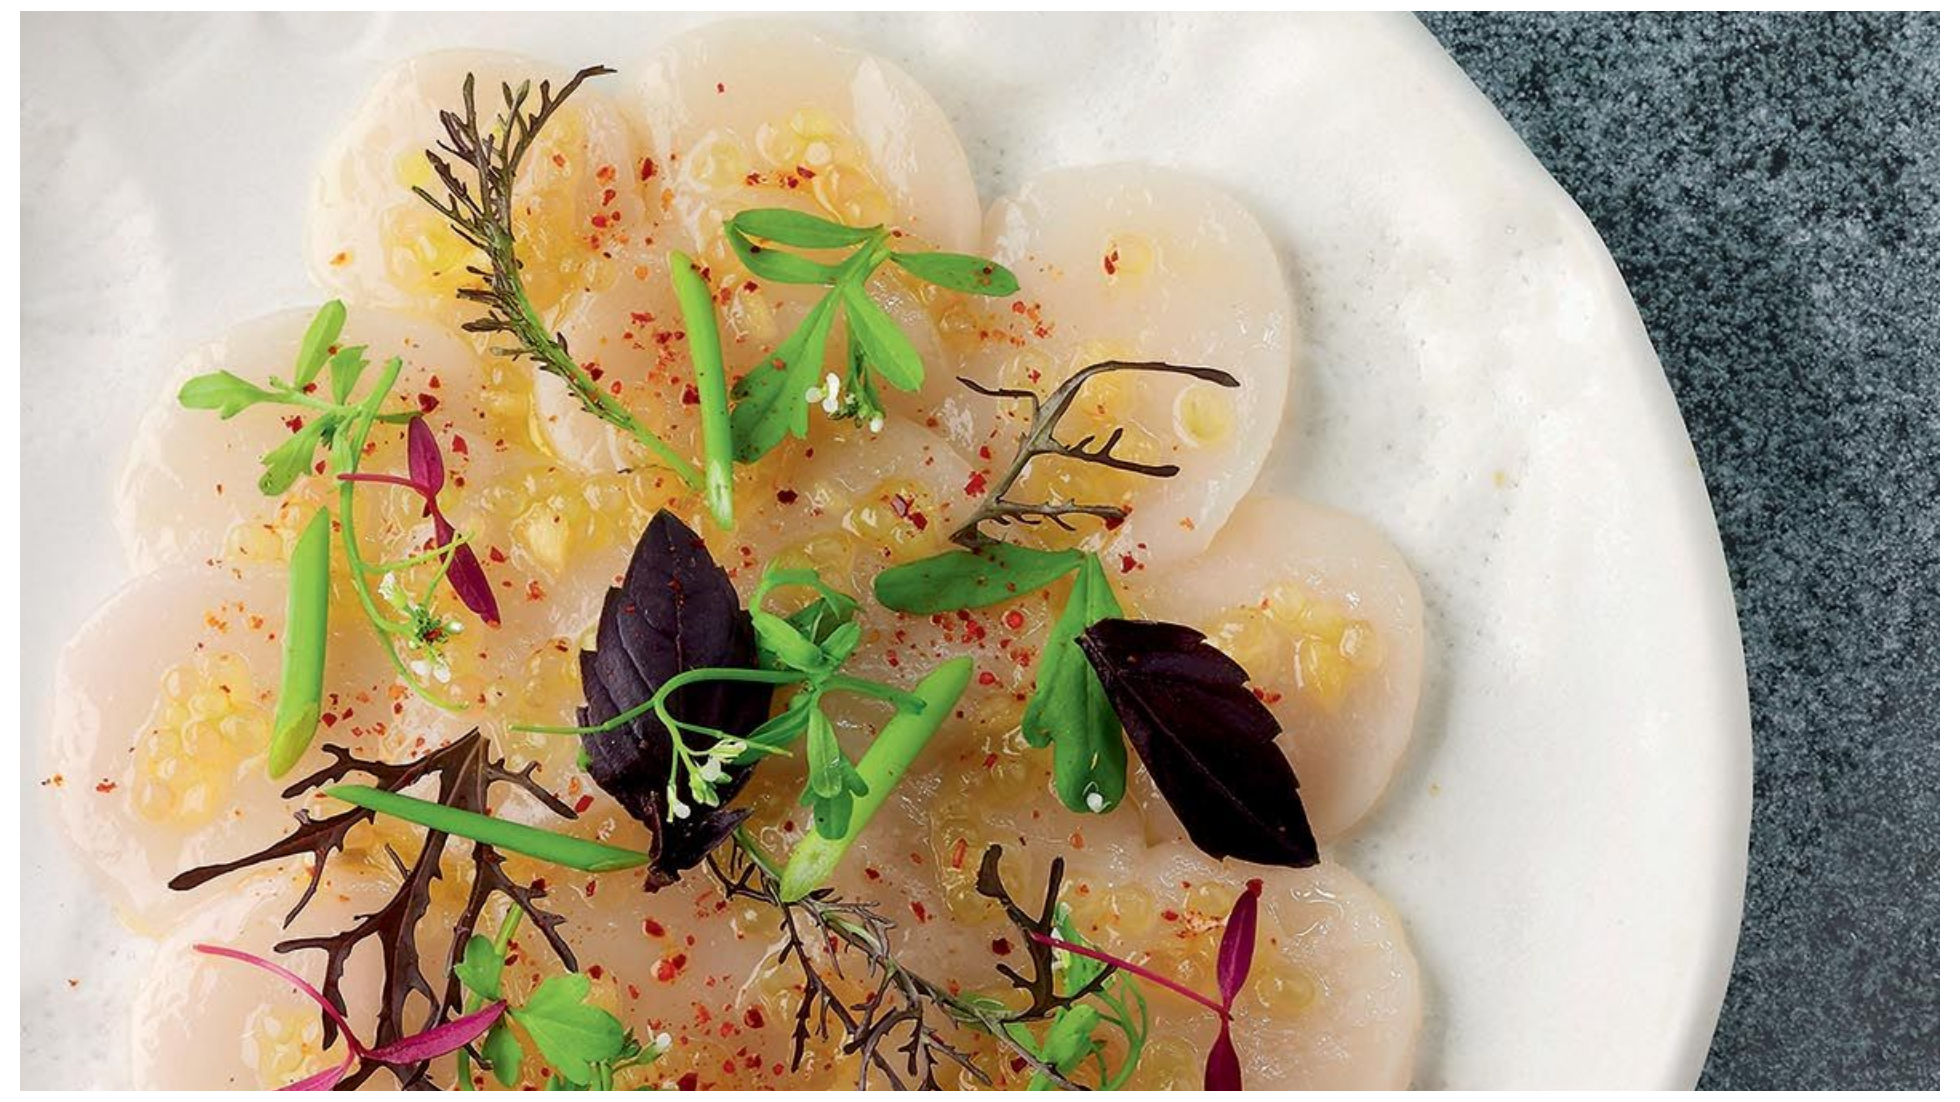 Carpaccio of scallops with citrus fruits